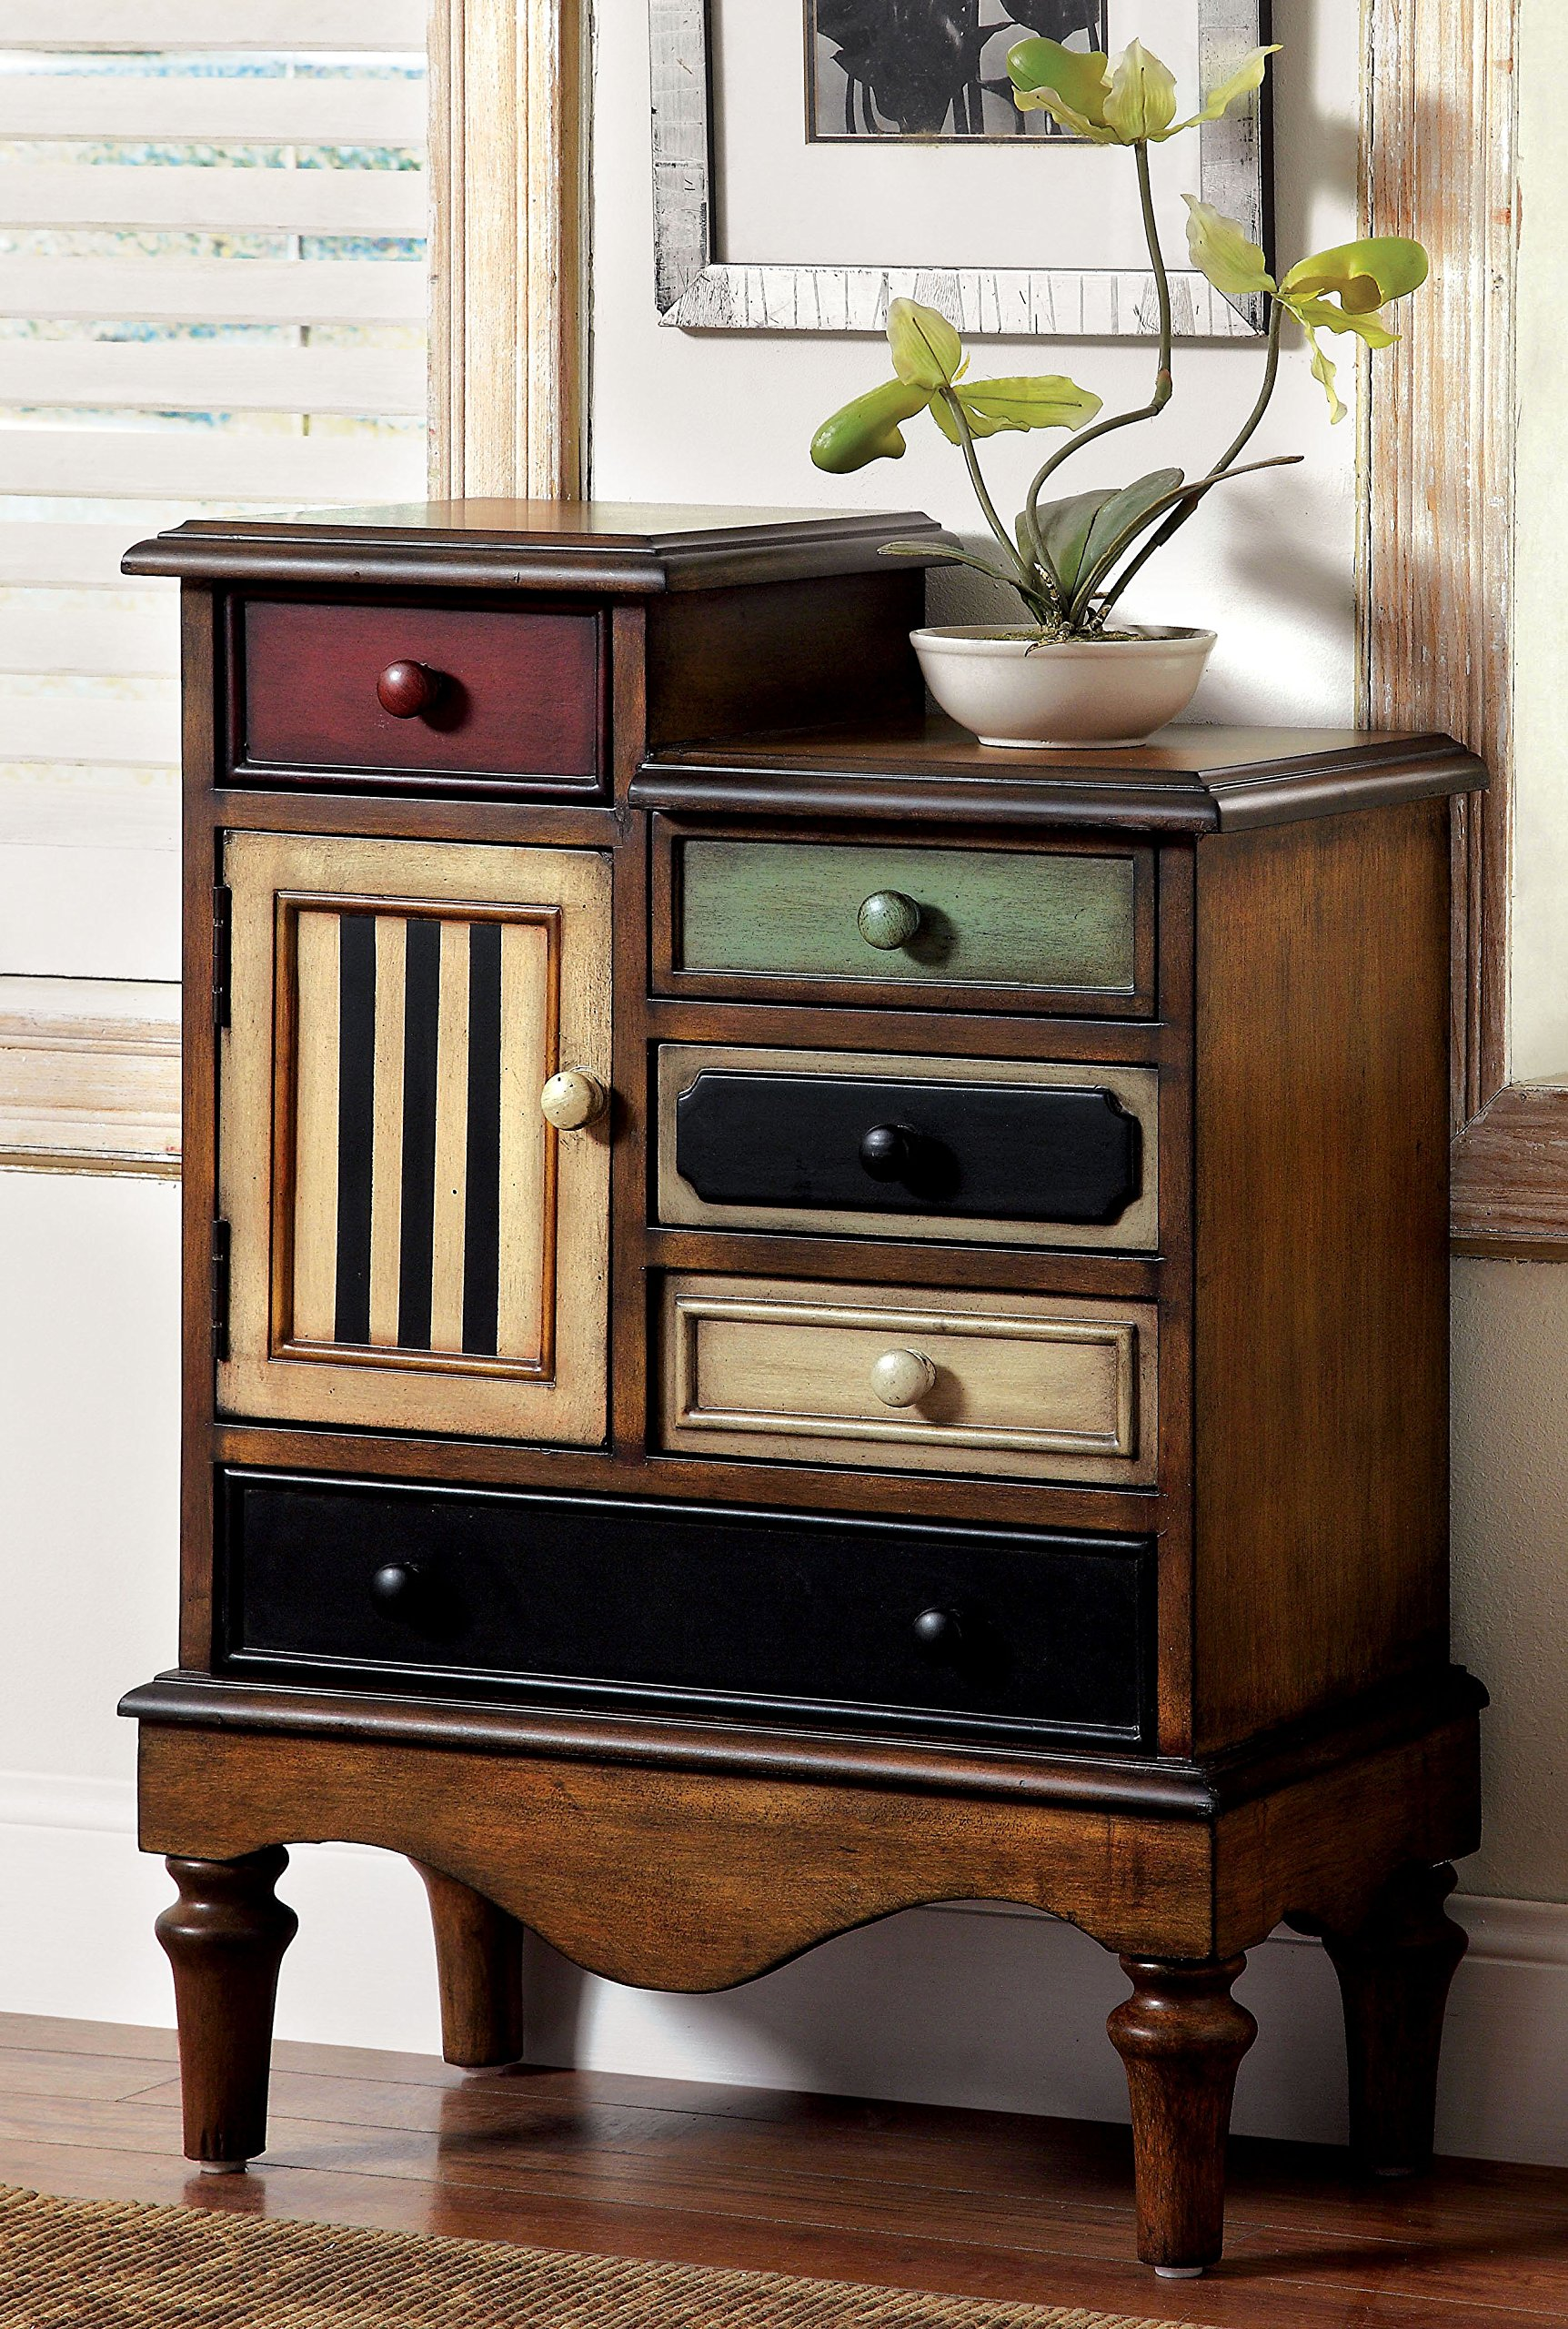 Furniture of America Circo Vintage Style Storage Chest, Antique Walnut by Furniture of America